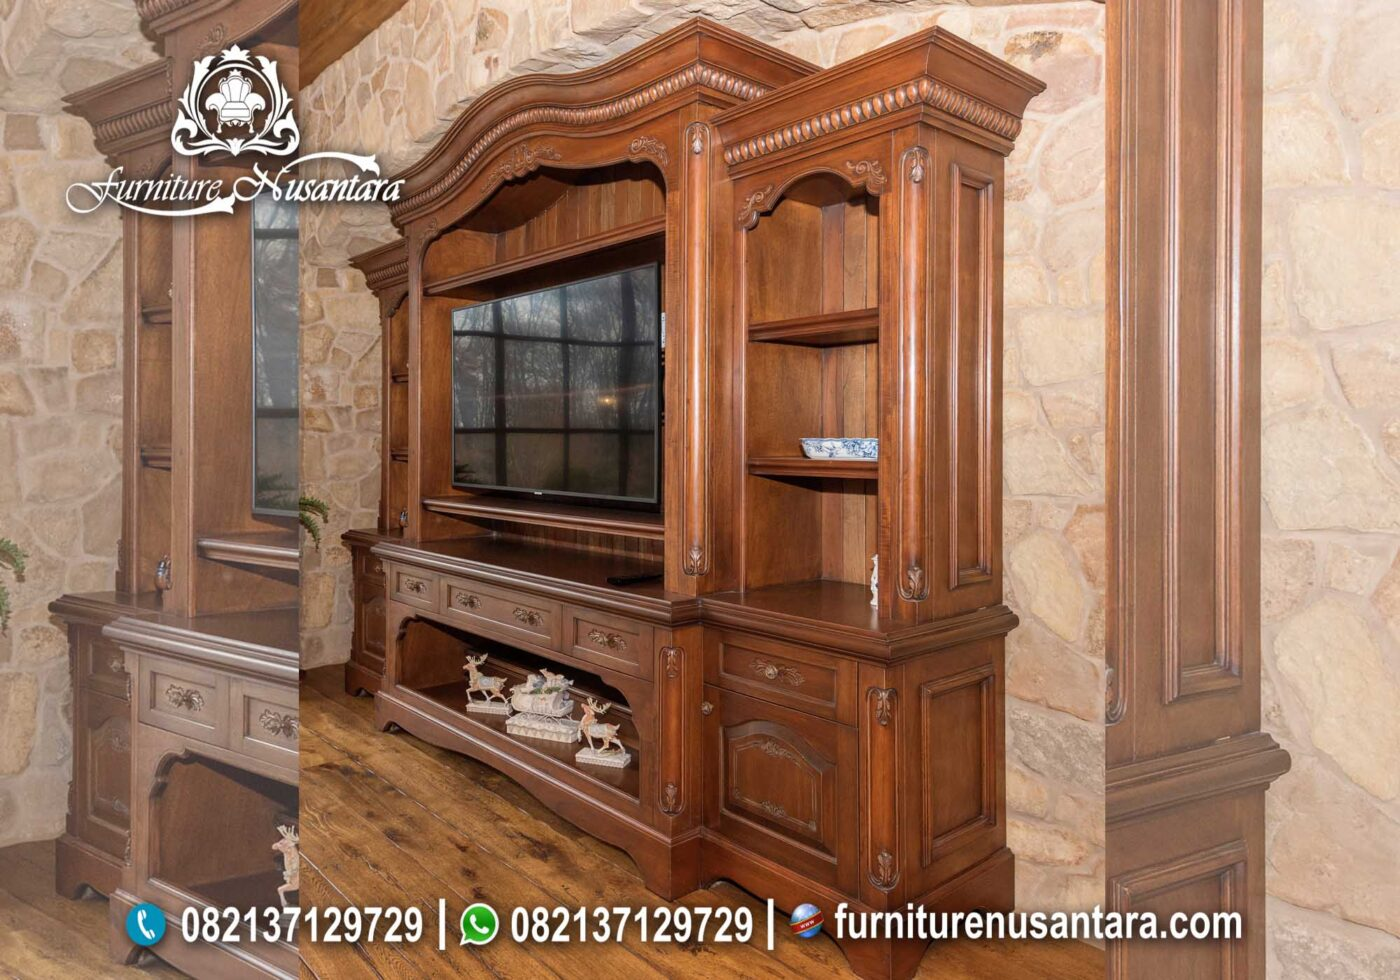 Jual Lemari TV Jati Natural BTV-32, Furniture Nusantara